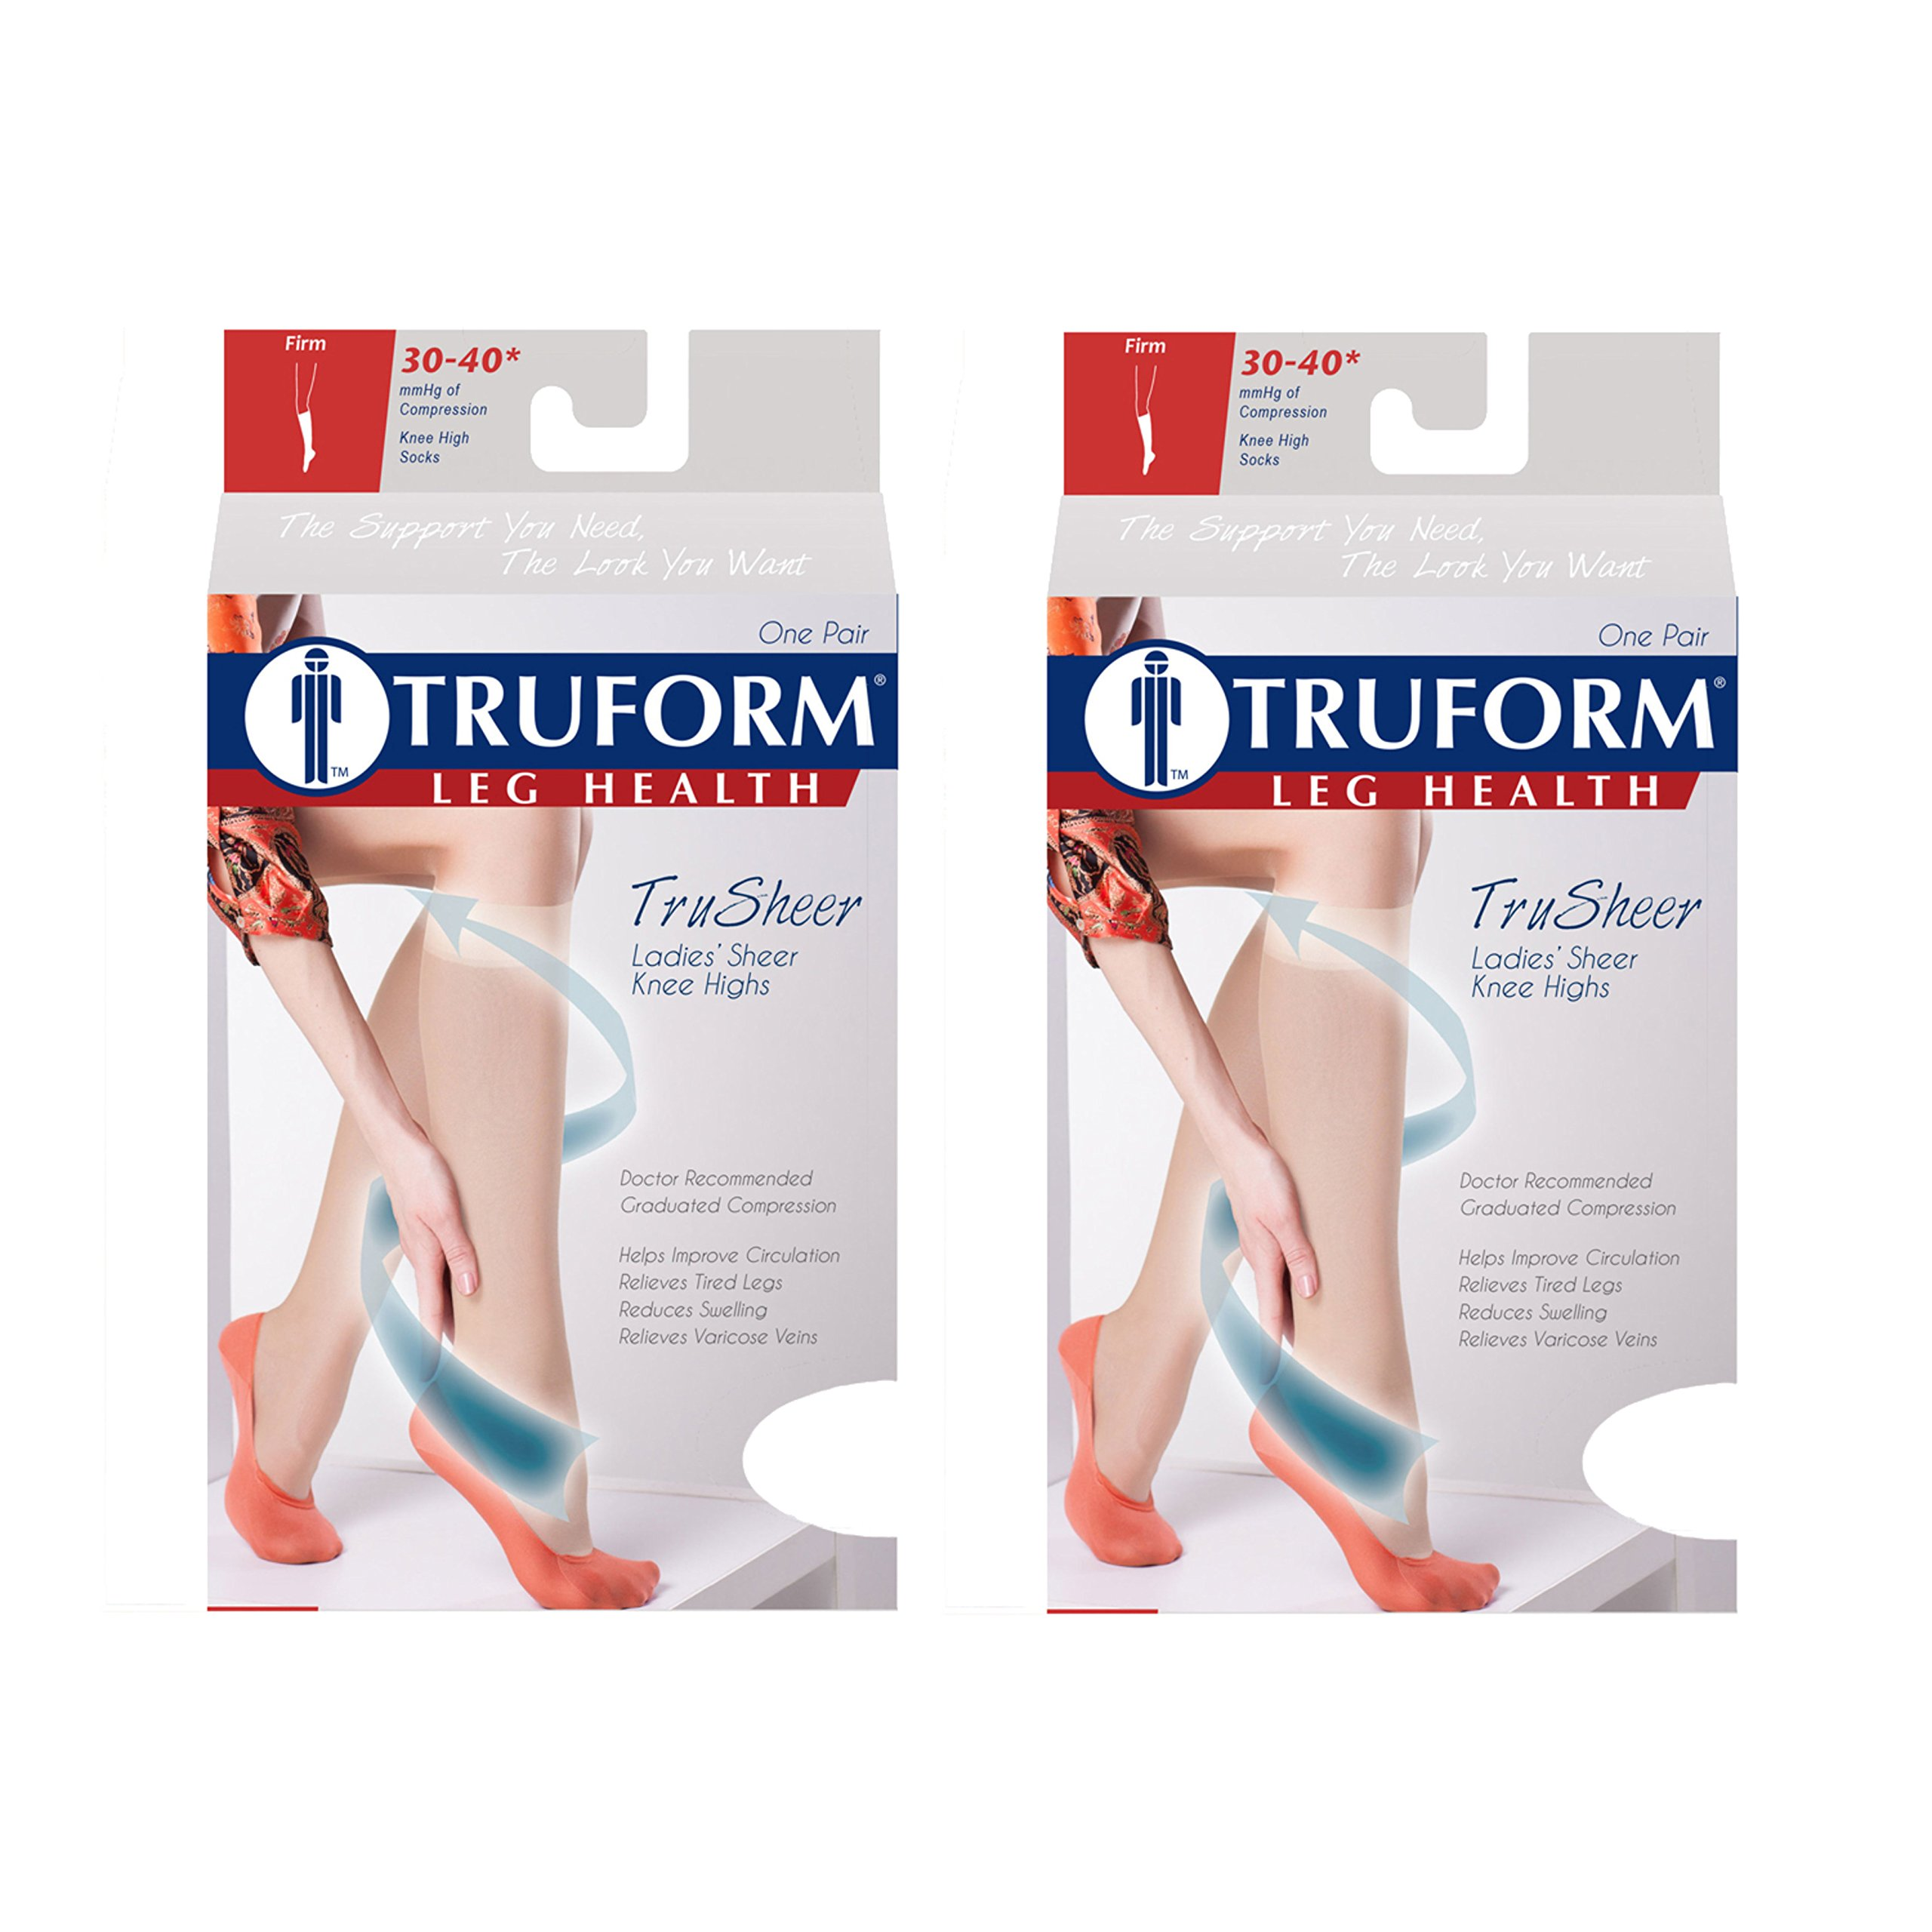 Truform Compression 30-40 mmHg Sheer Knee High Stockings Black, Large, 2 Count